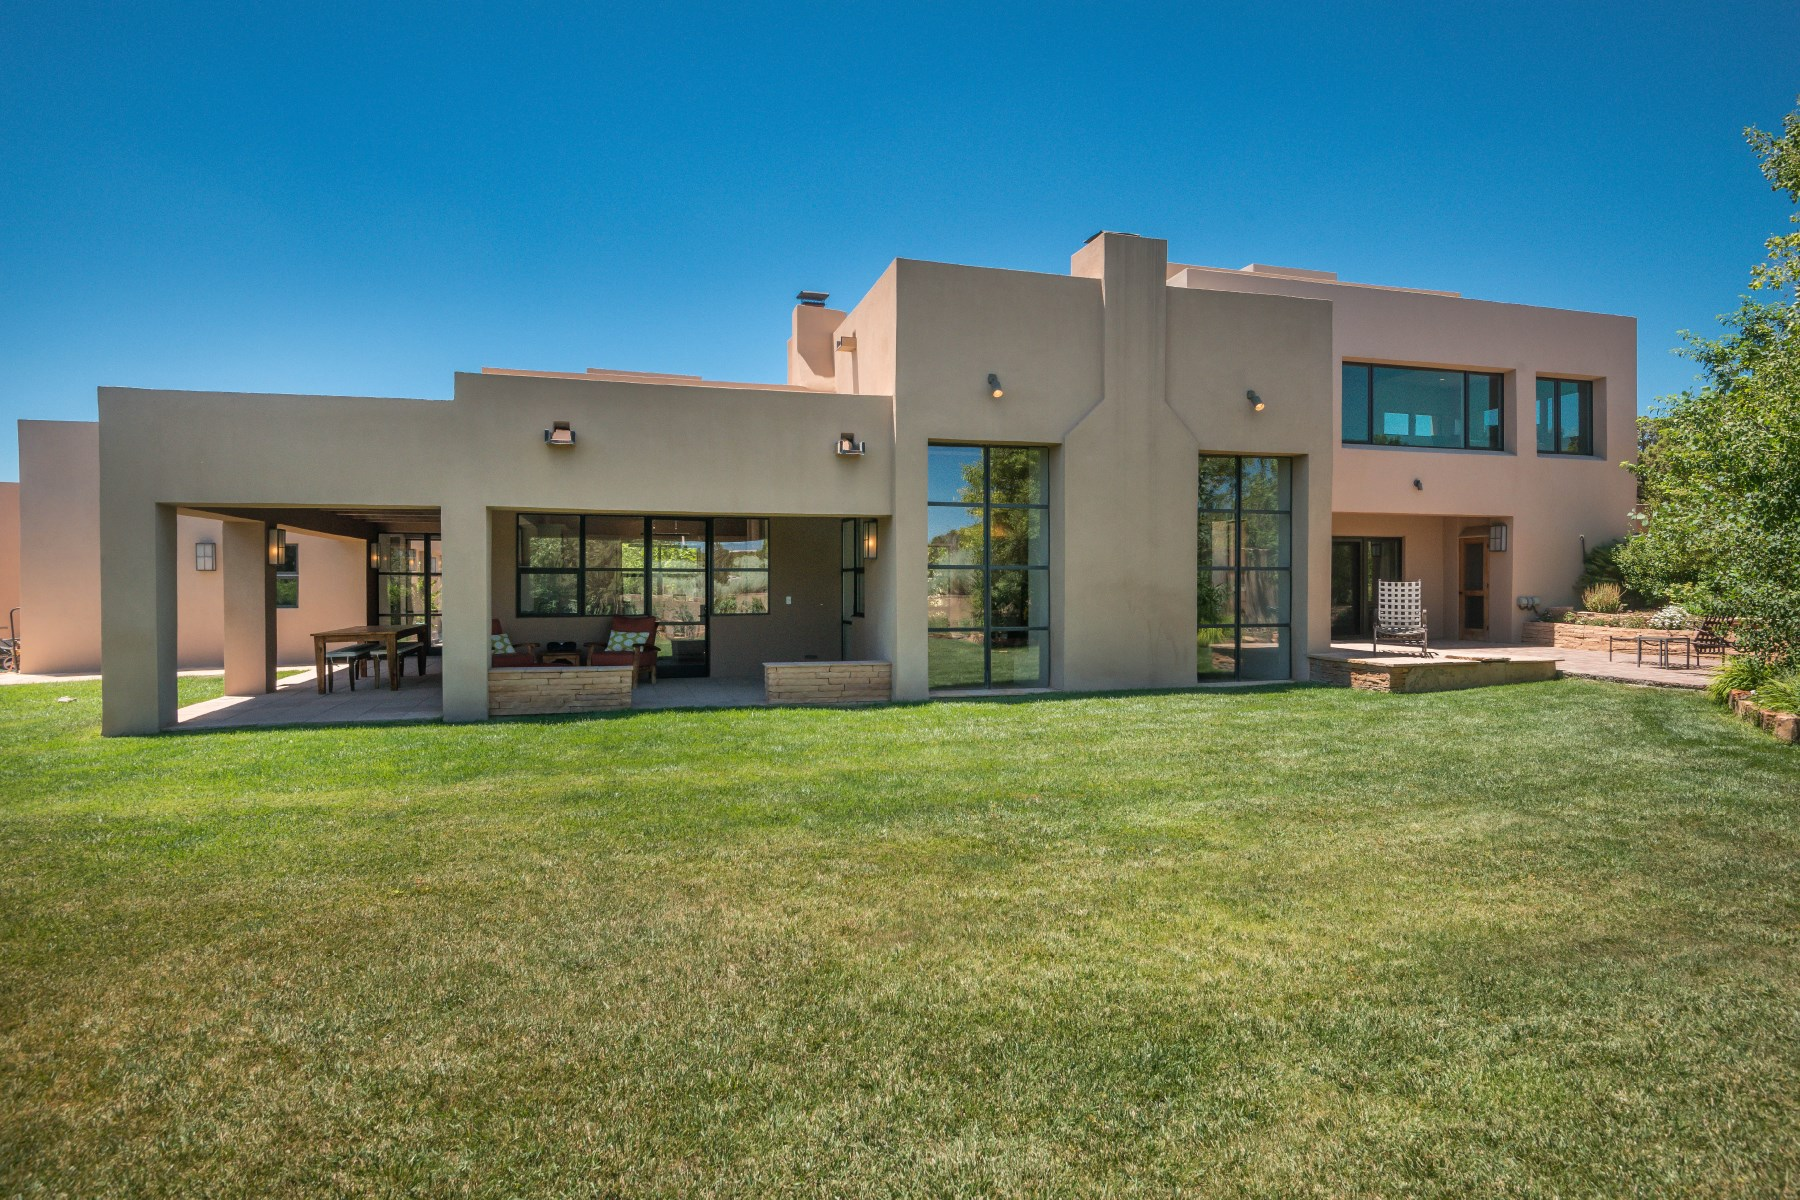 Single Family Home for Sale at 33 Parkside Drive Santa Fe, New Mexico, 87506 United States